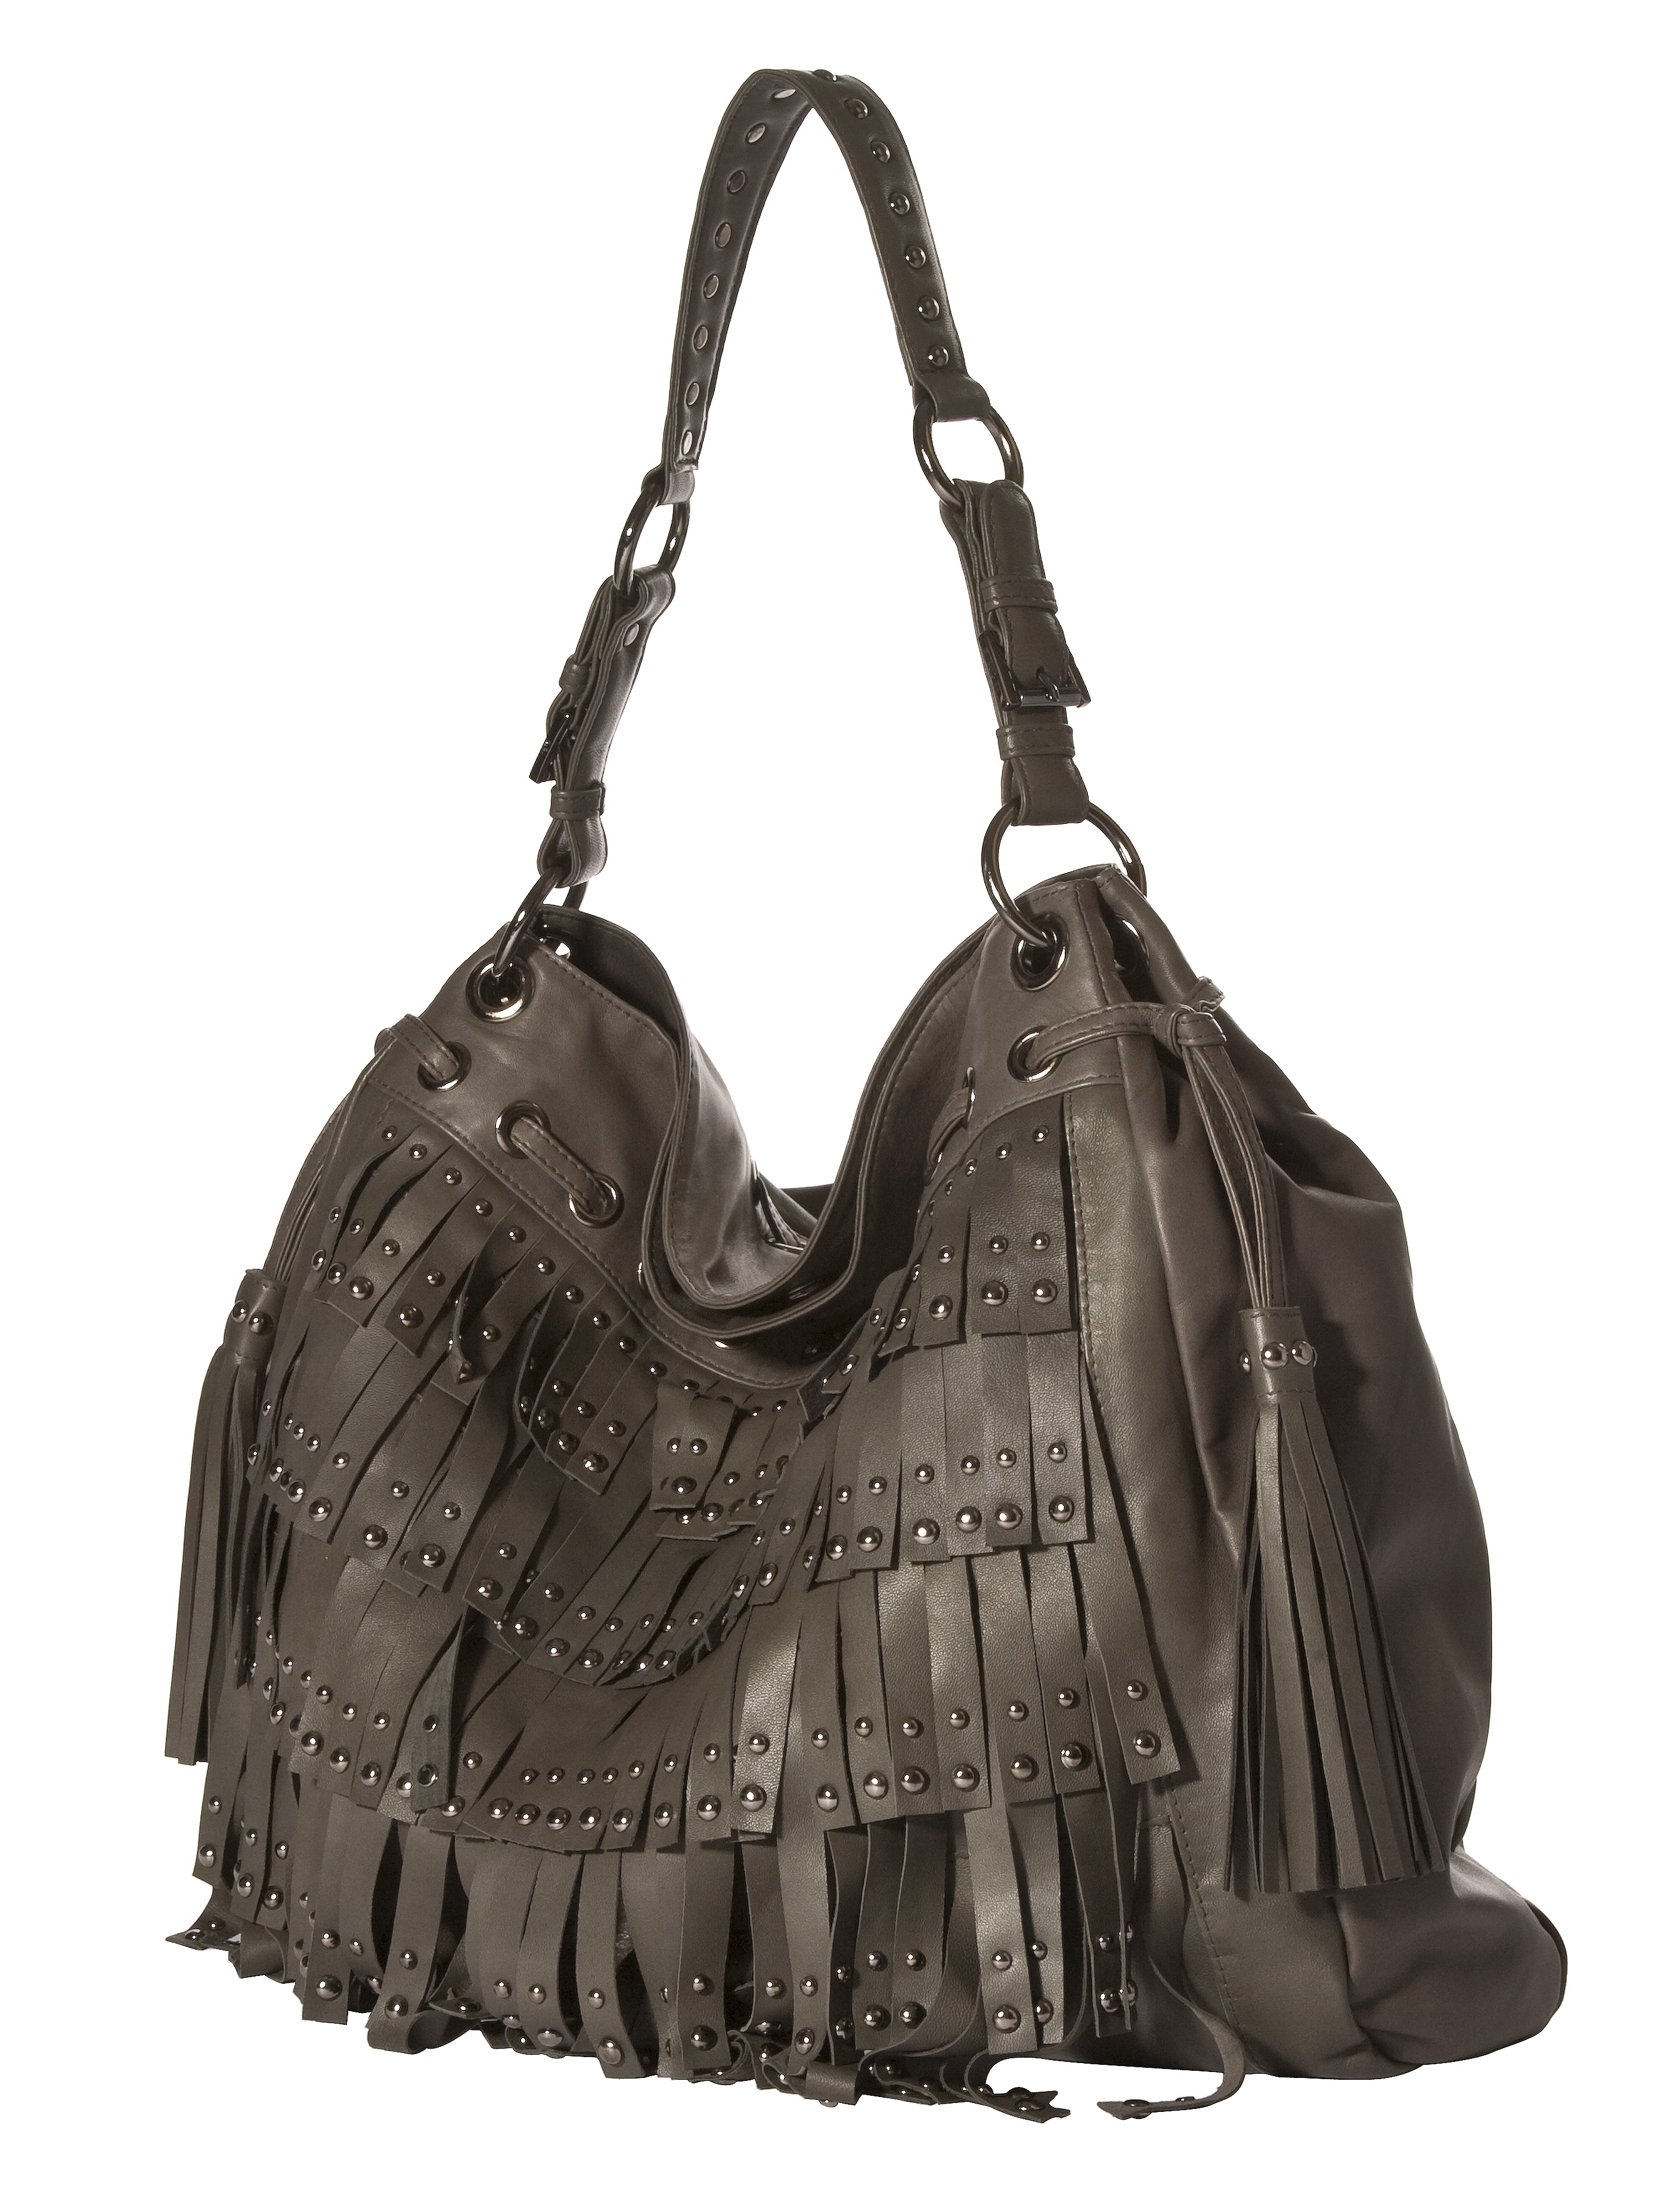 a5a8f16e608c Rafe Handbags and Accessories are Chic Favorites – Exclusive ...